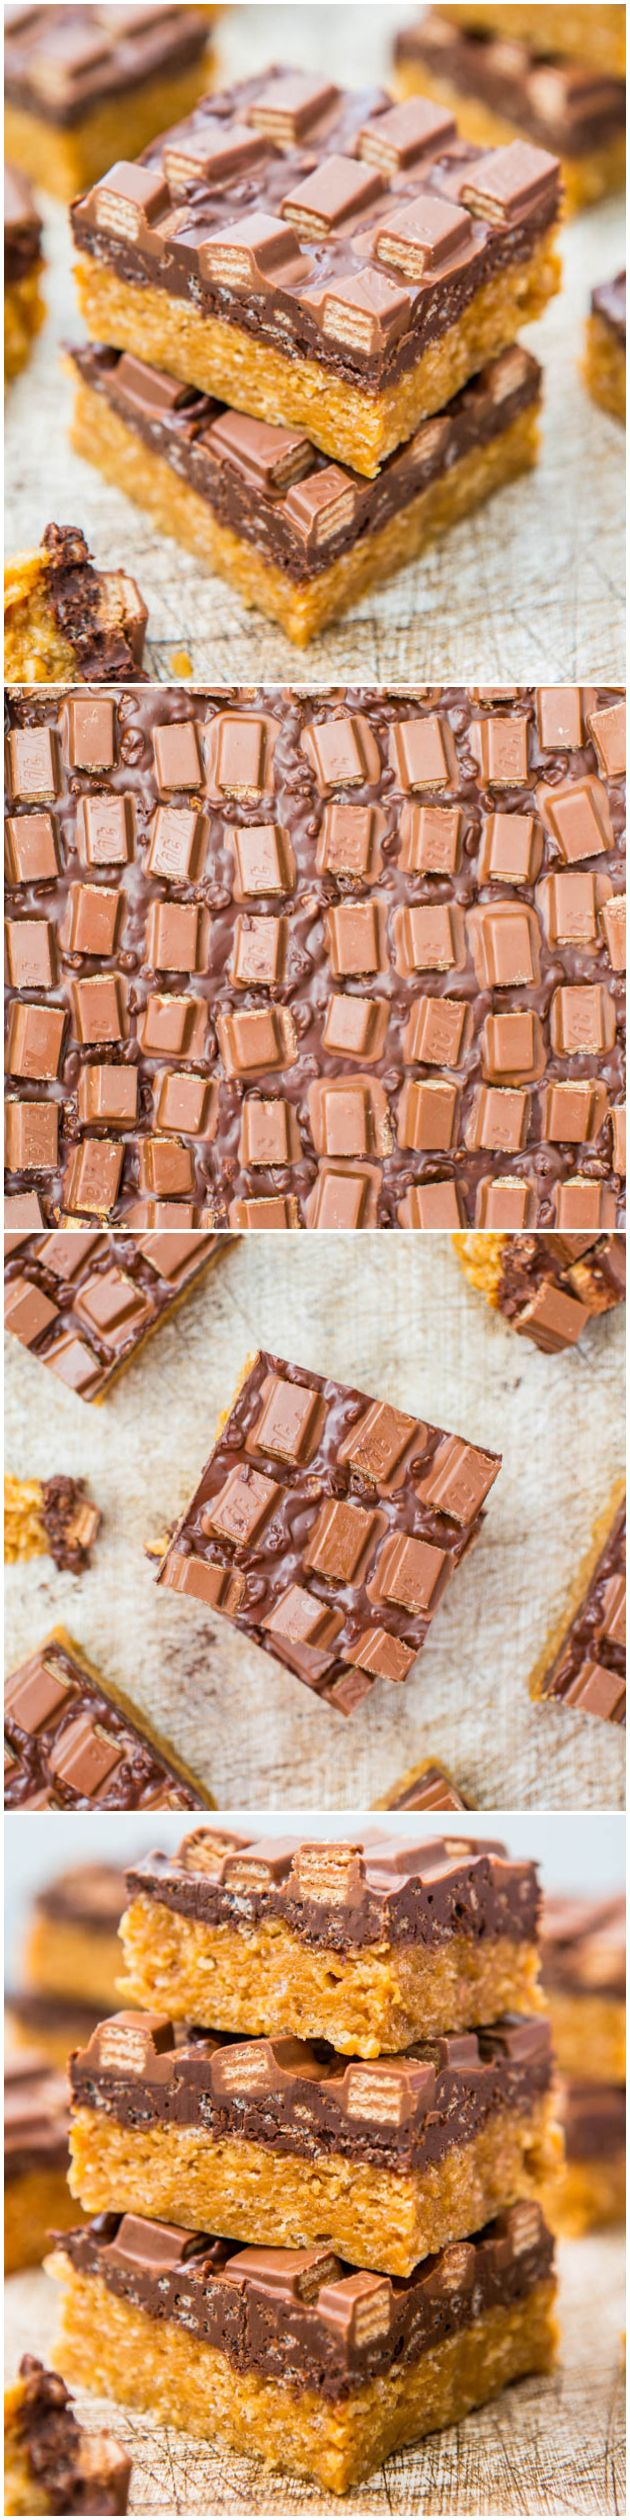 Chocolate Peanut Butter Kit Kat Crunch Bars - Easy, no-bake bars that are packed with peanut butter, chocolate & topped off with a wall of KitKats!